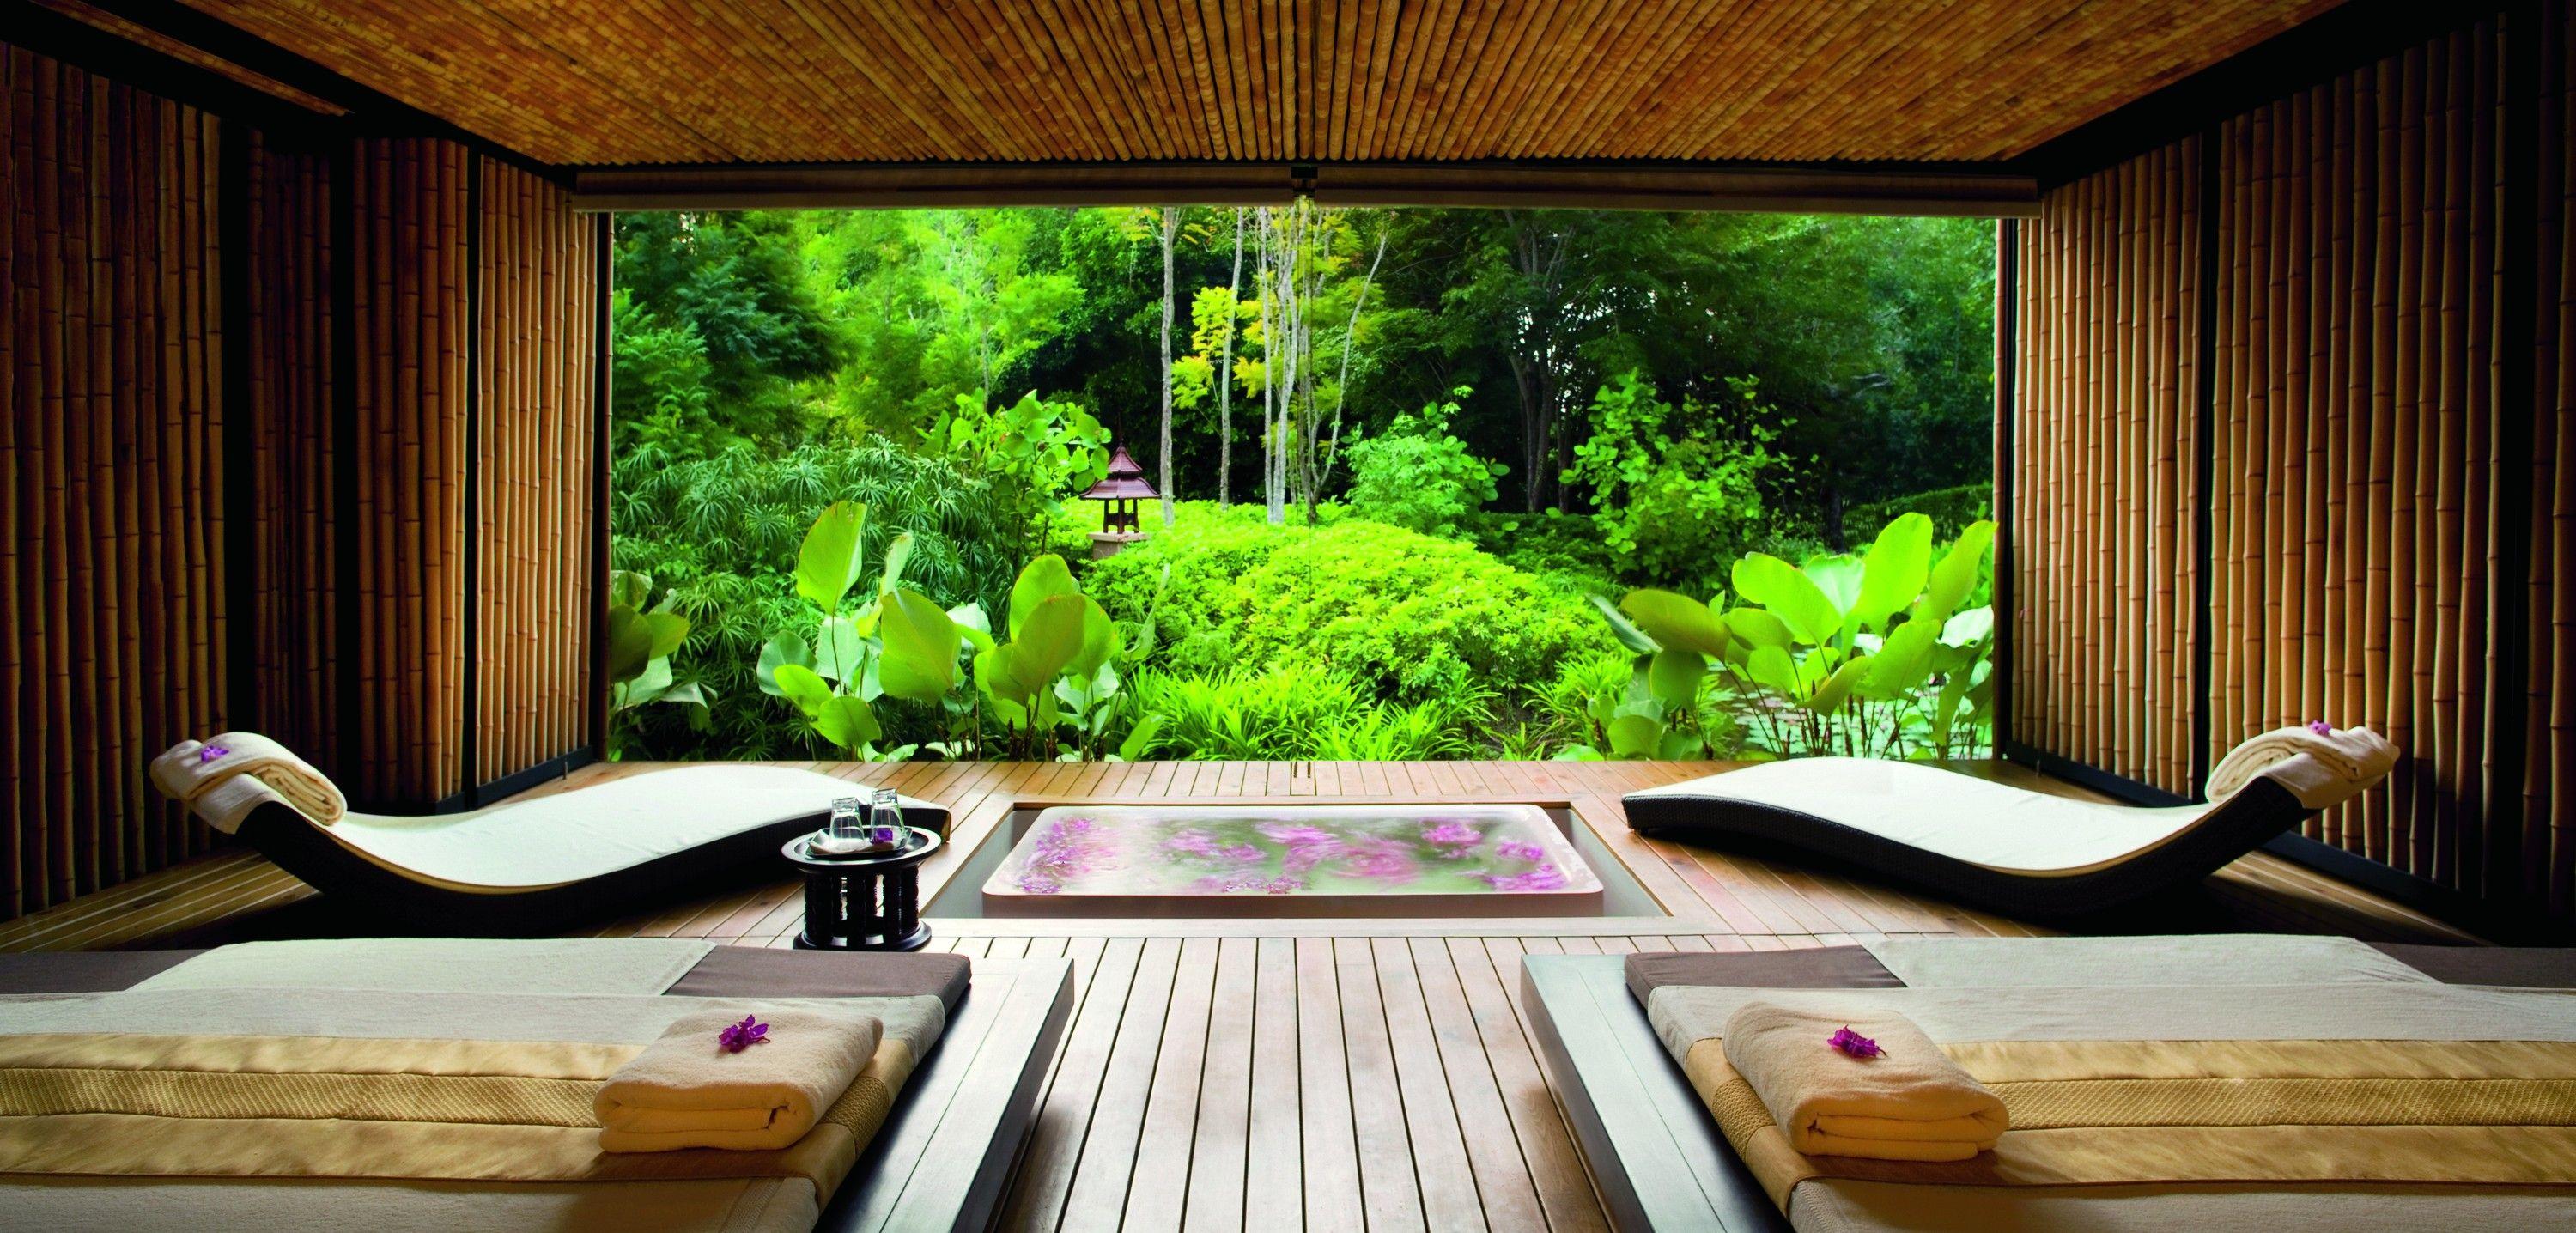 Relax and unwind in ESPA's VIP treatment room at Phulay Bay, a Ritz-Carlton Reserve.